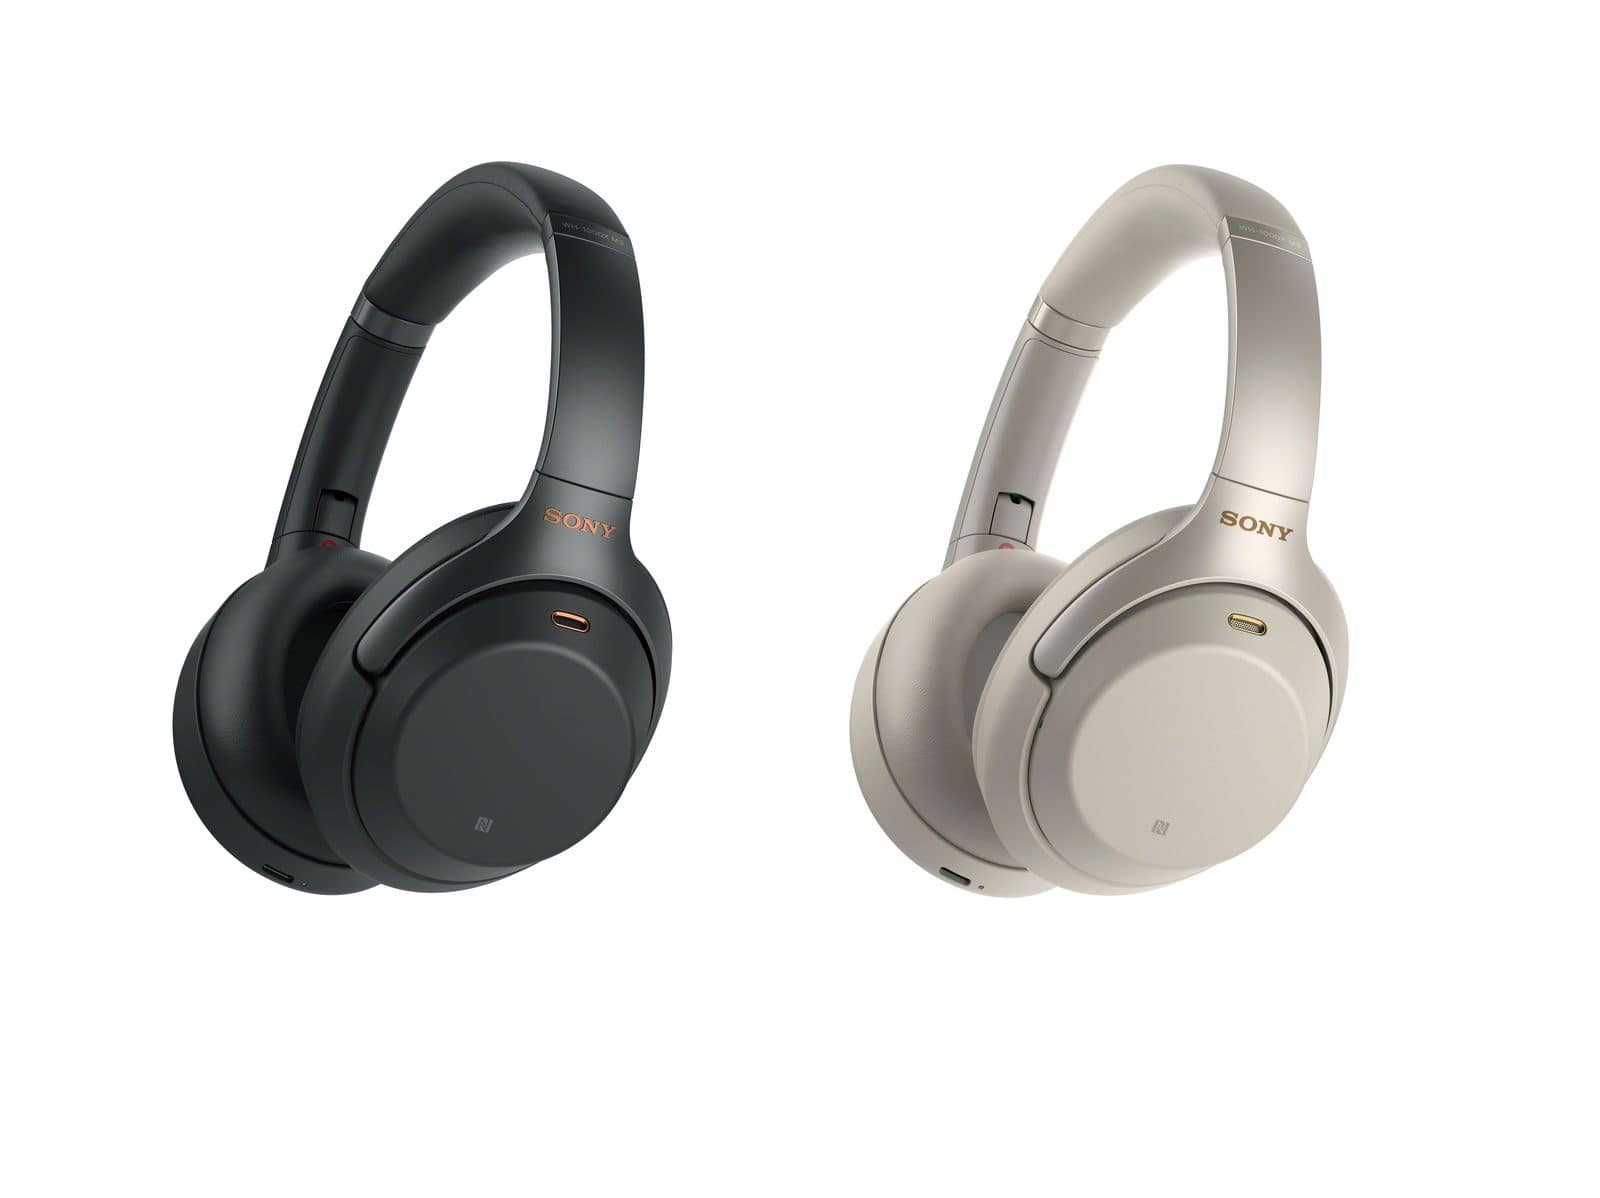 Sony WH-1000XM3 Wireless Noise Canceling Over-Ear Headphones (Black or White) - Manufacturer Refurbished $199.99